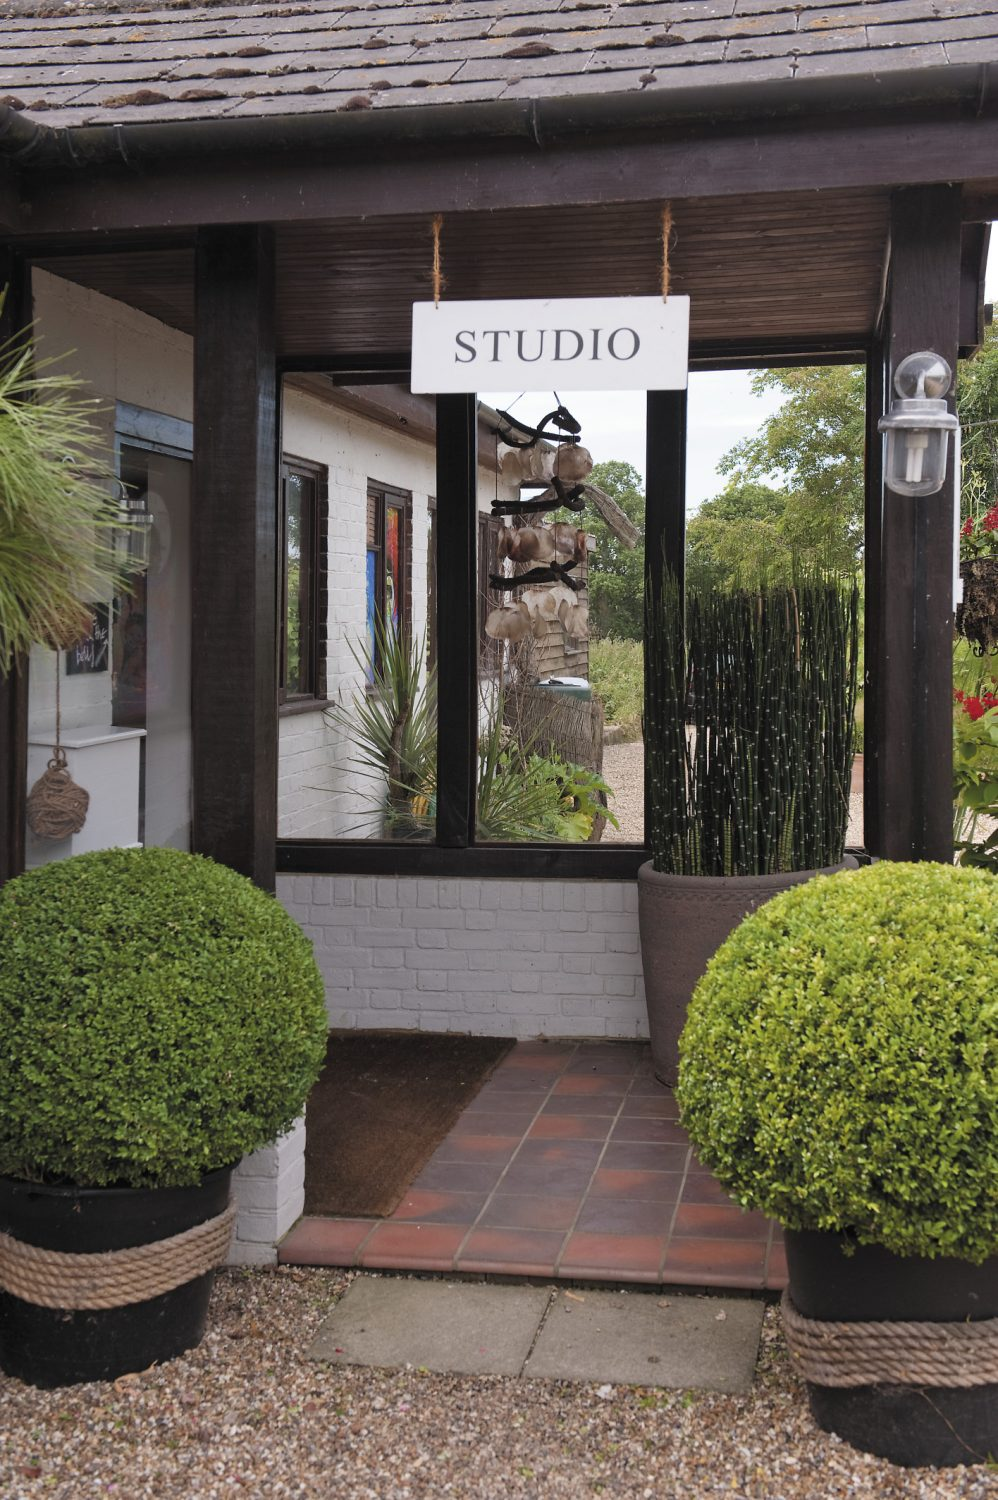 Mel's workplace is part of the eclectic collection of buildings that comprise his Pluckley home